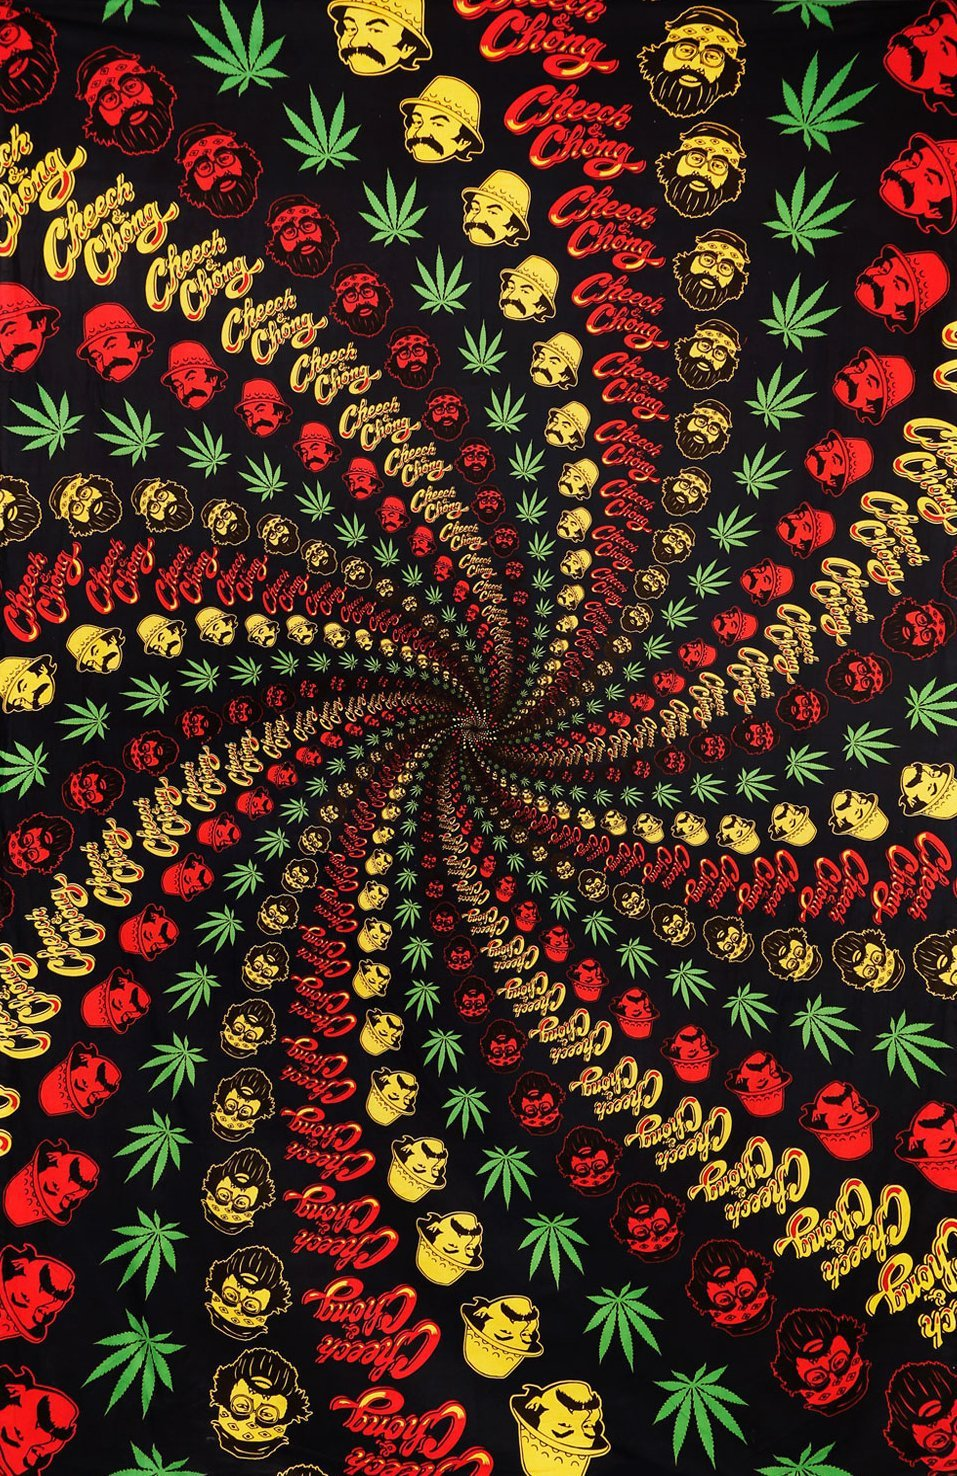 Tapestries Cheech and Chong - Weed Vortex - Tapestry 009494